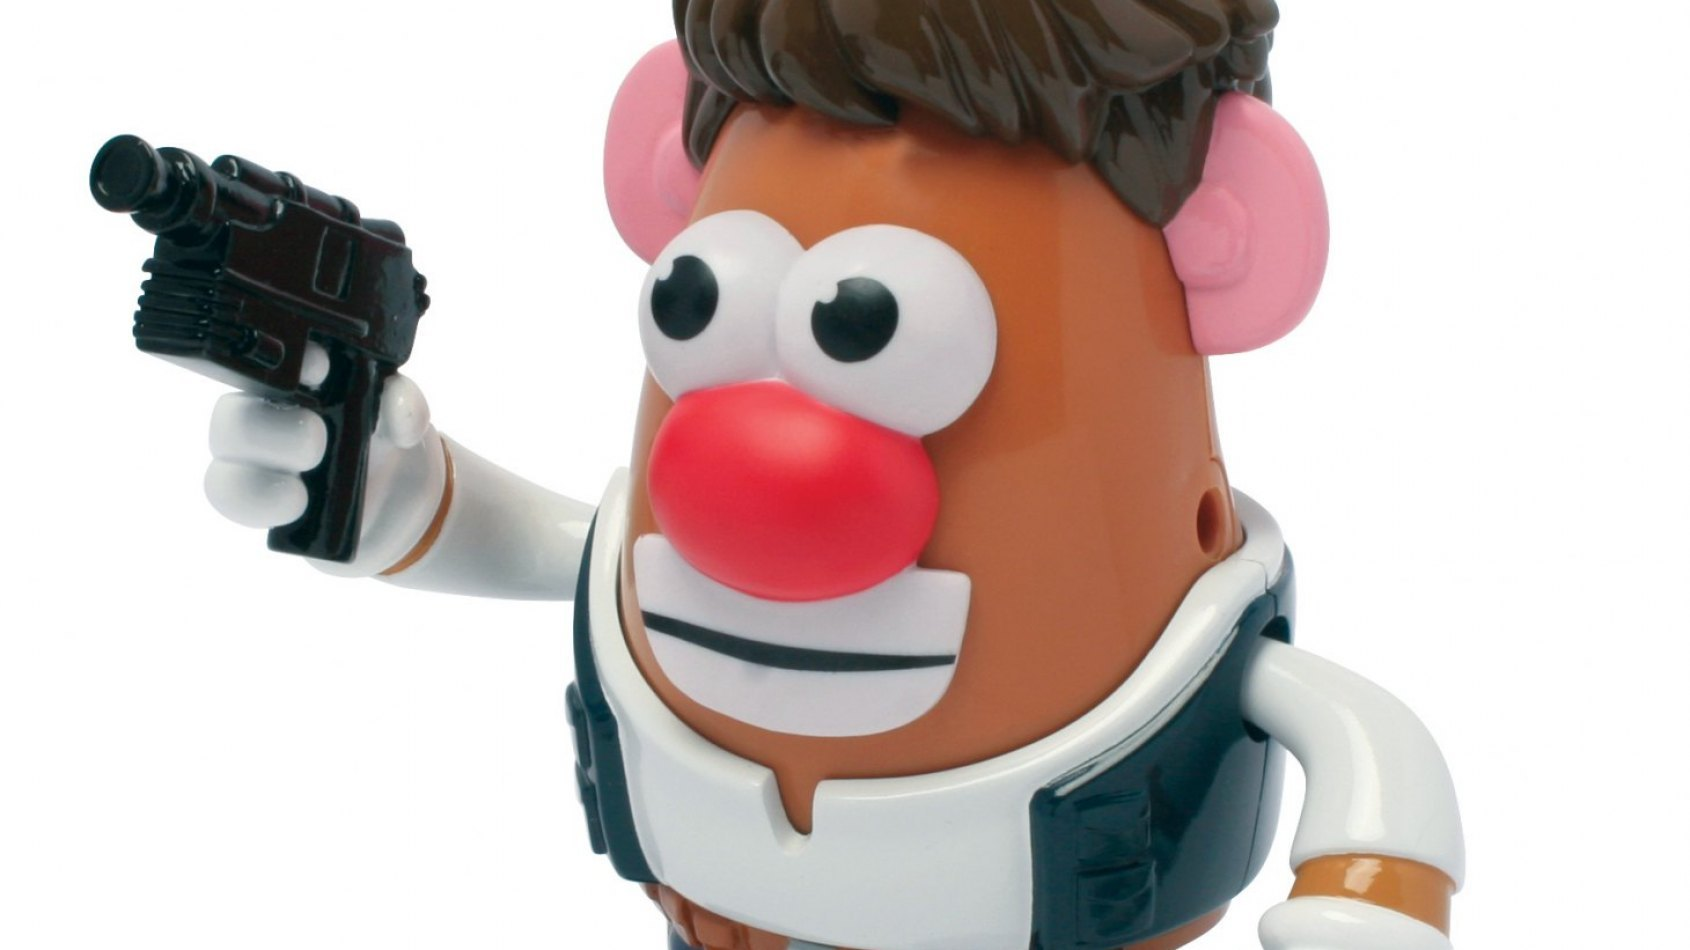 Han Solo et Chewbacca version Monsieur Patate arrivent !